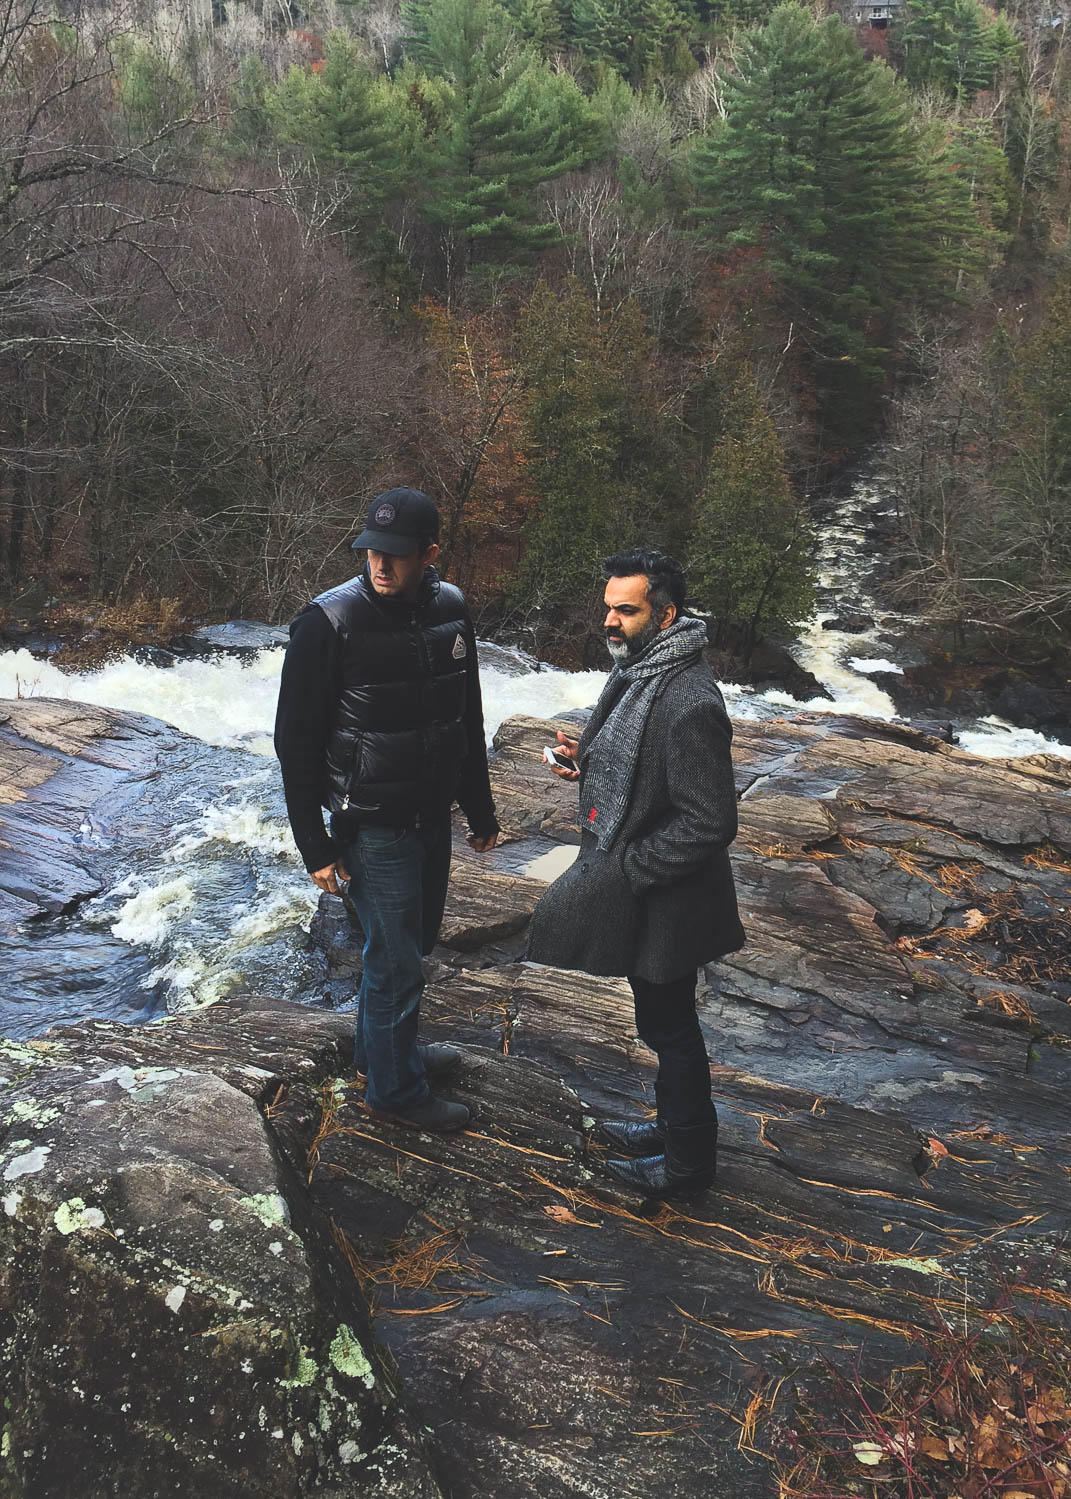 Director Arshad Khan and DOP Richard Duquette, during the location scouting in Rawdon, Quebec for their next film, Valery's suitcase.